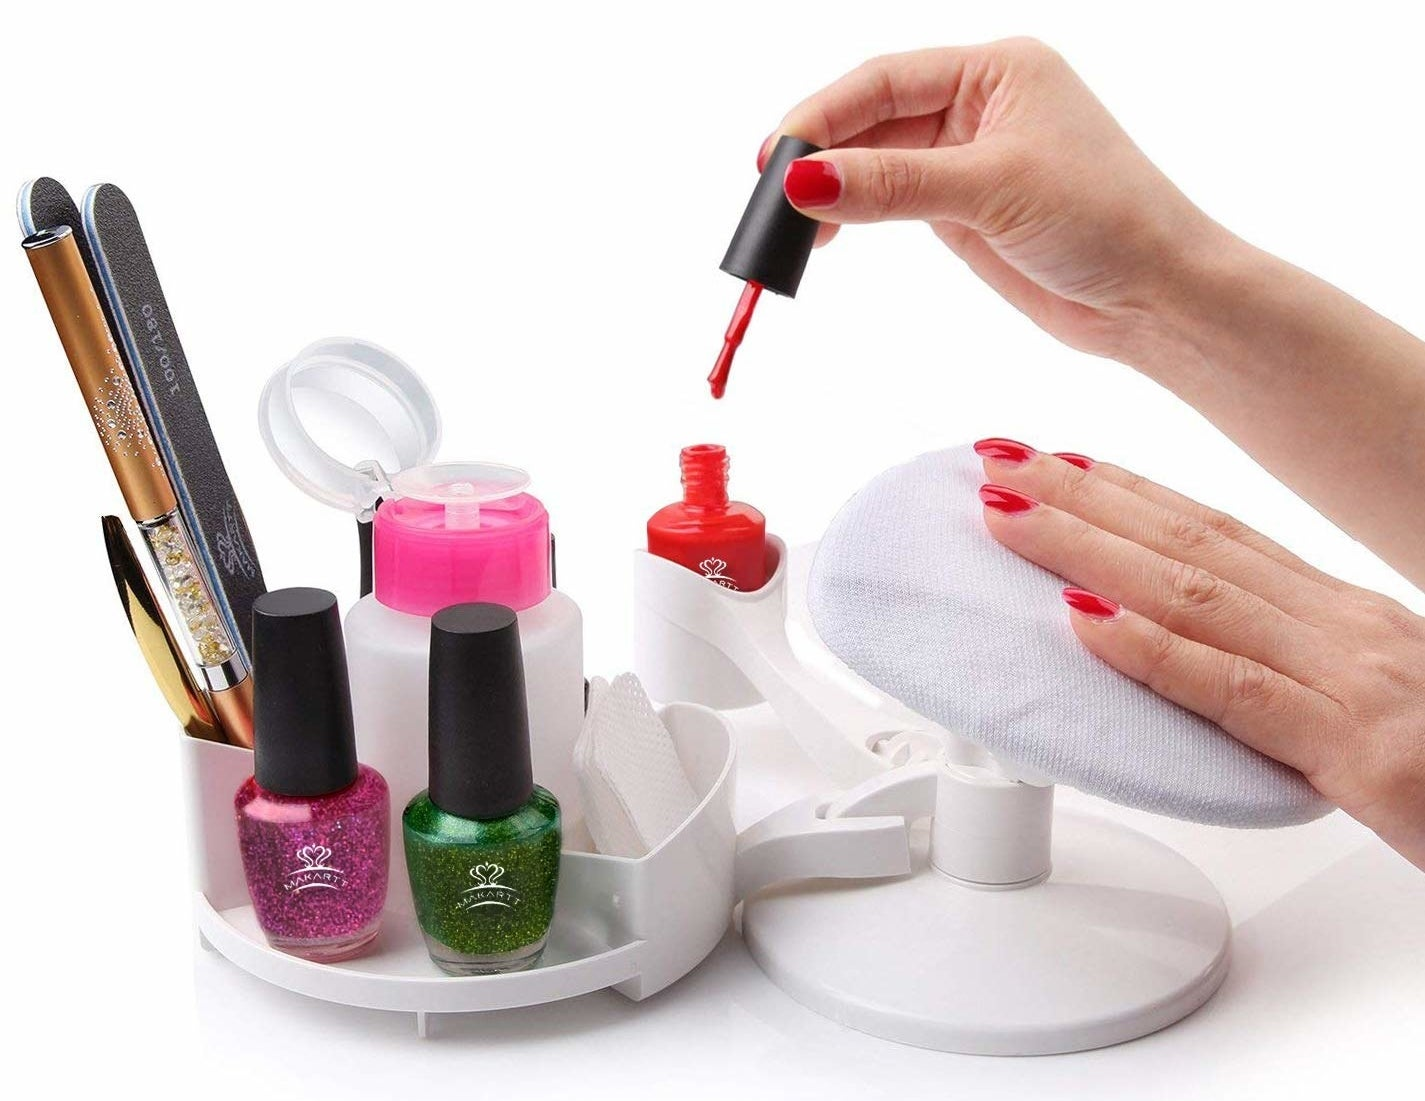 A person using the nail design pedestal to paint their nails.